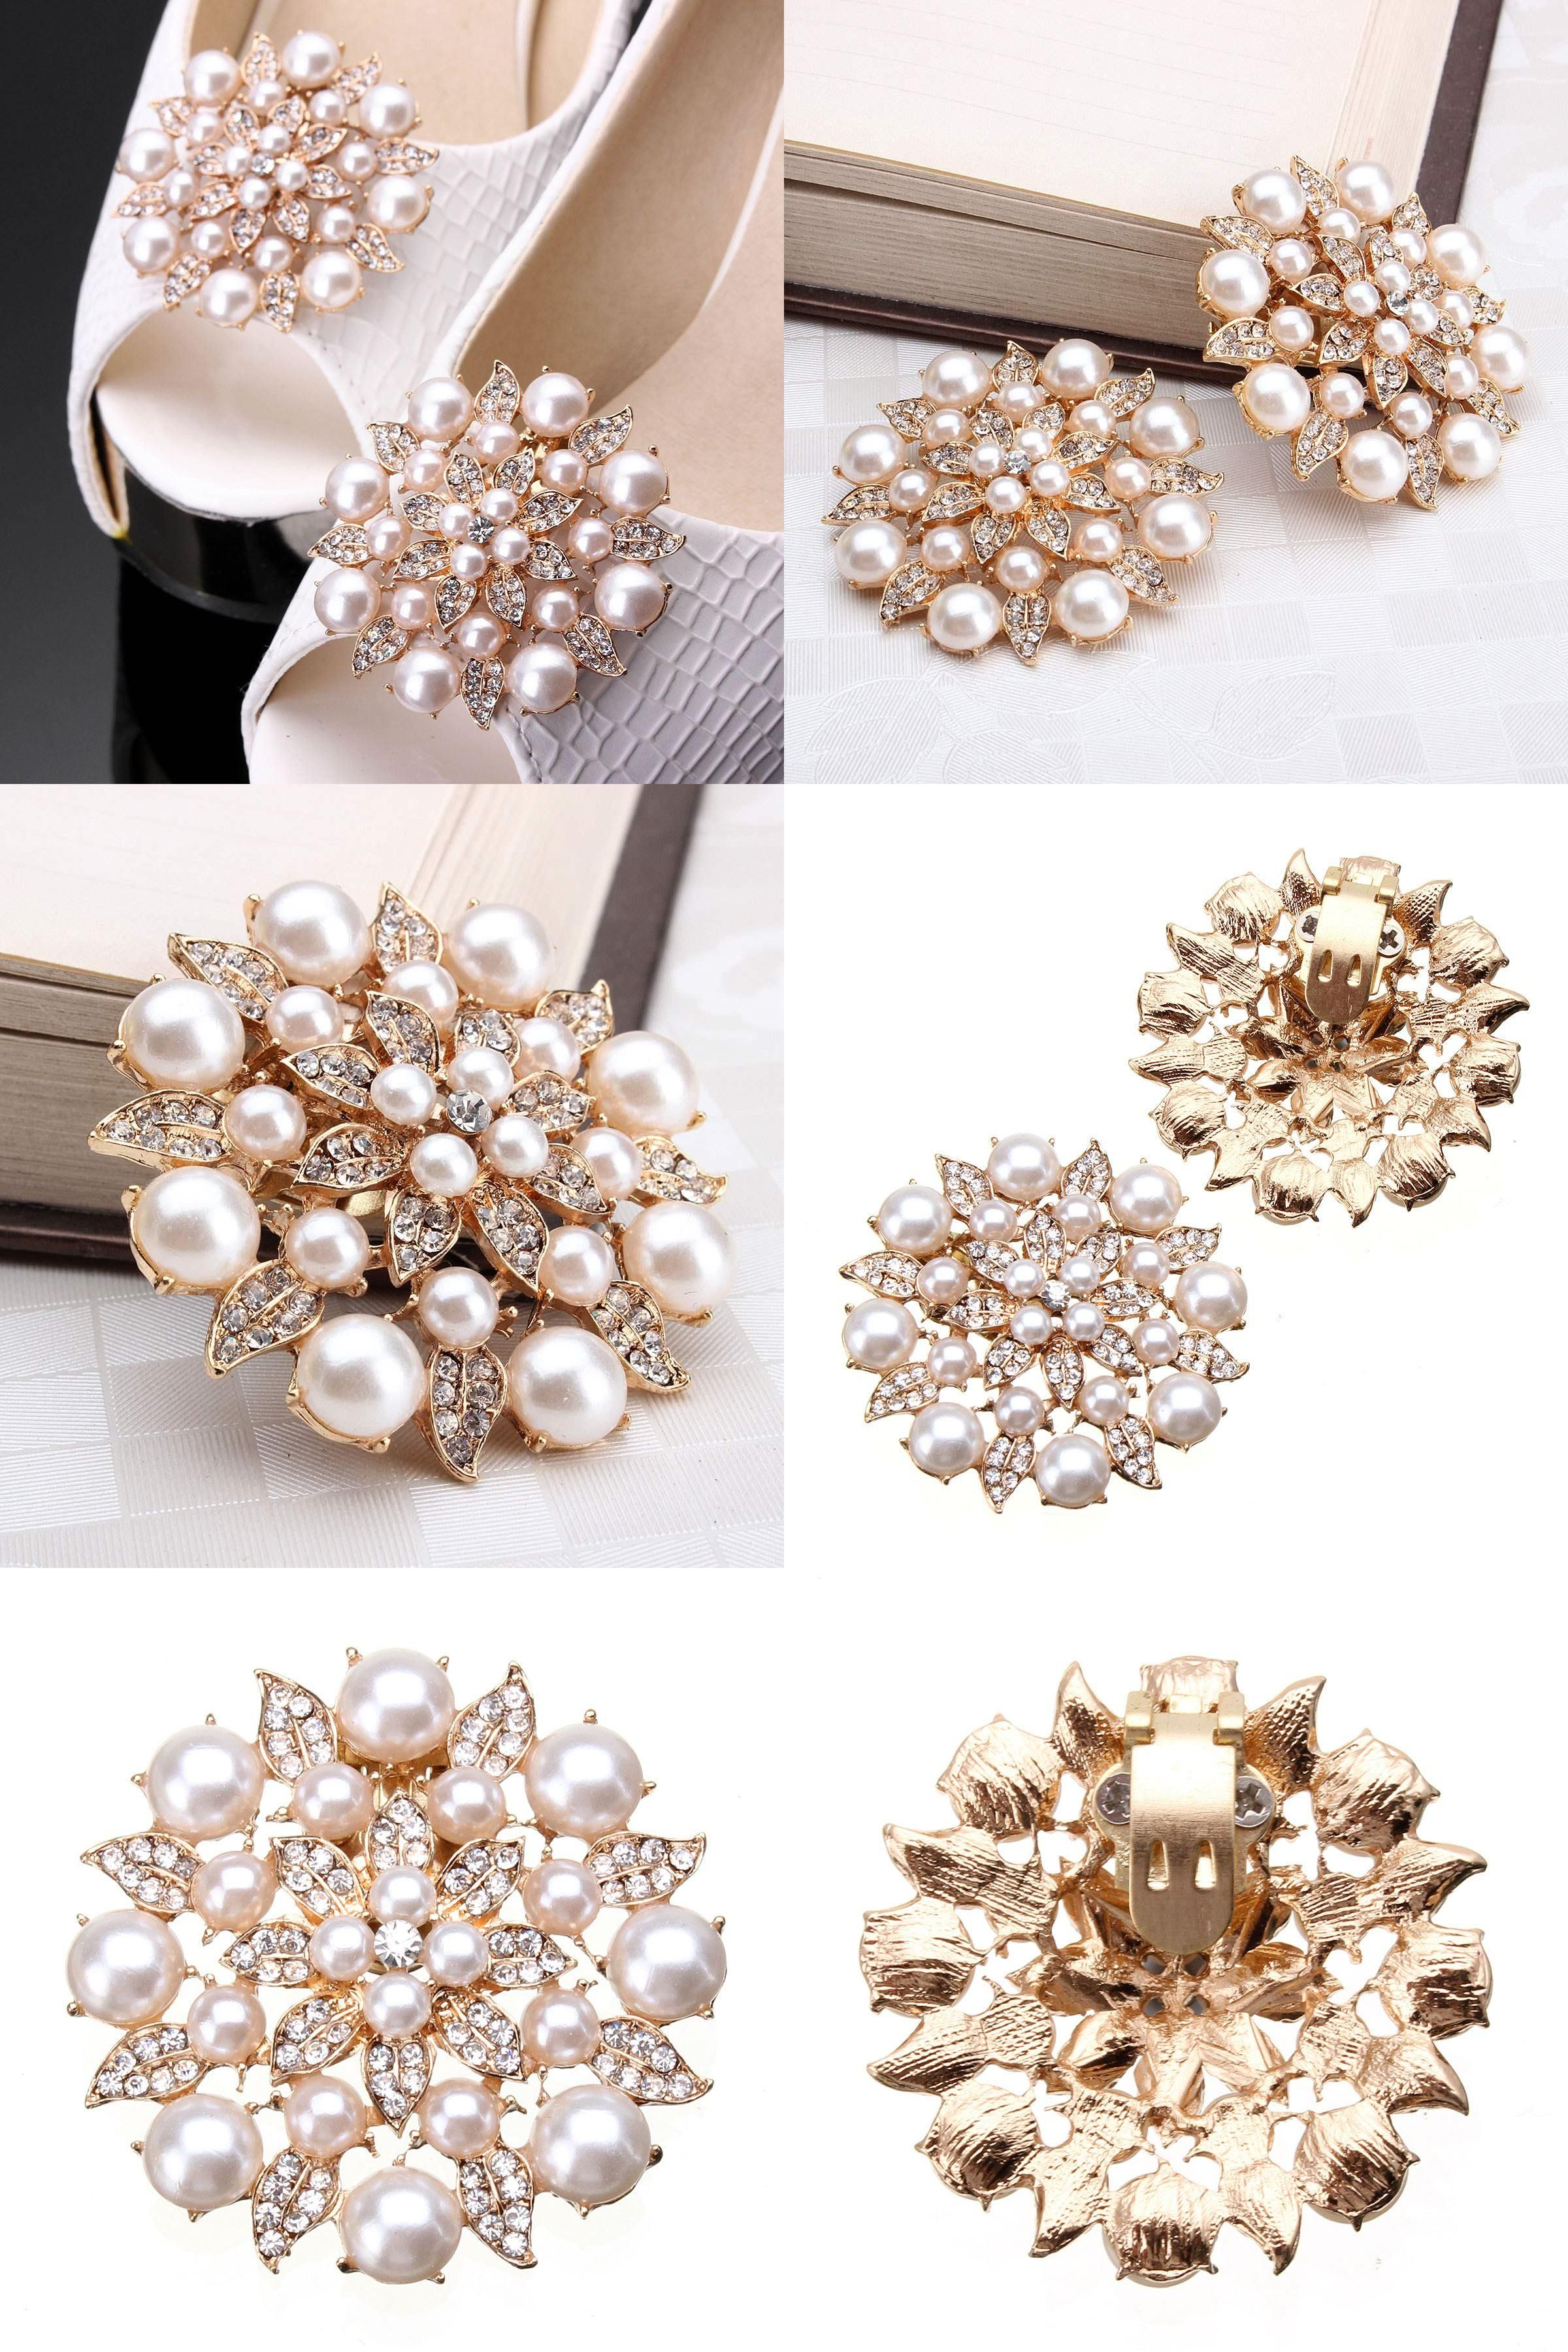 2Pcs Rhinestone Crystal Metal Shoe Clips Shoe Charms Decor for Wedding Party